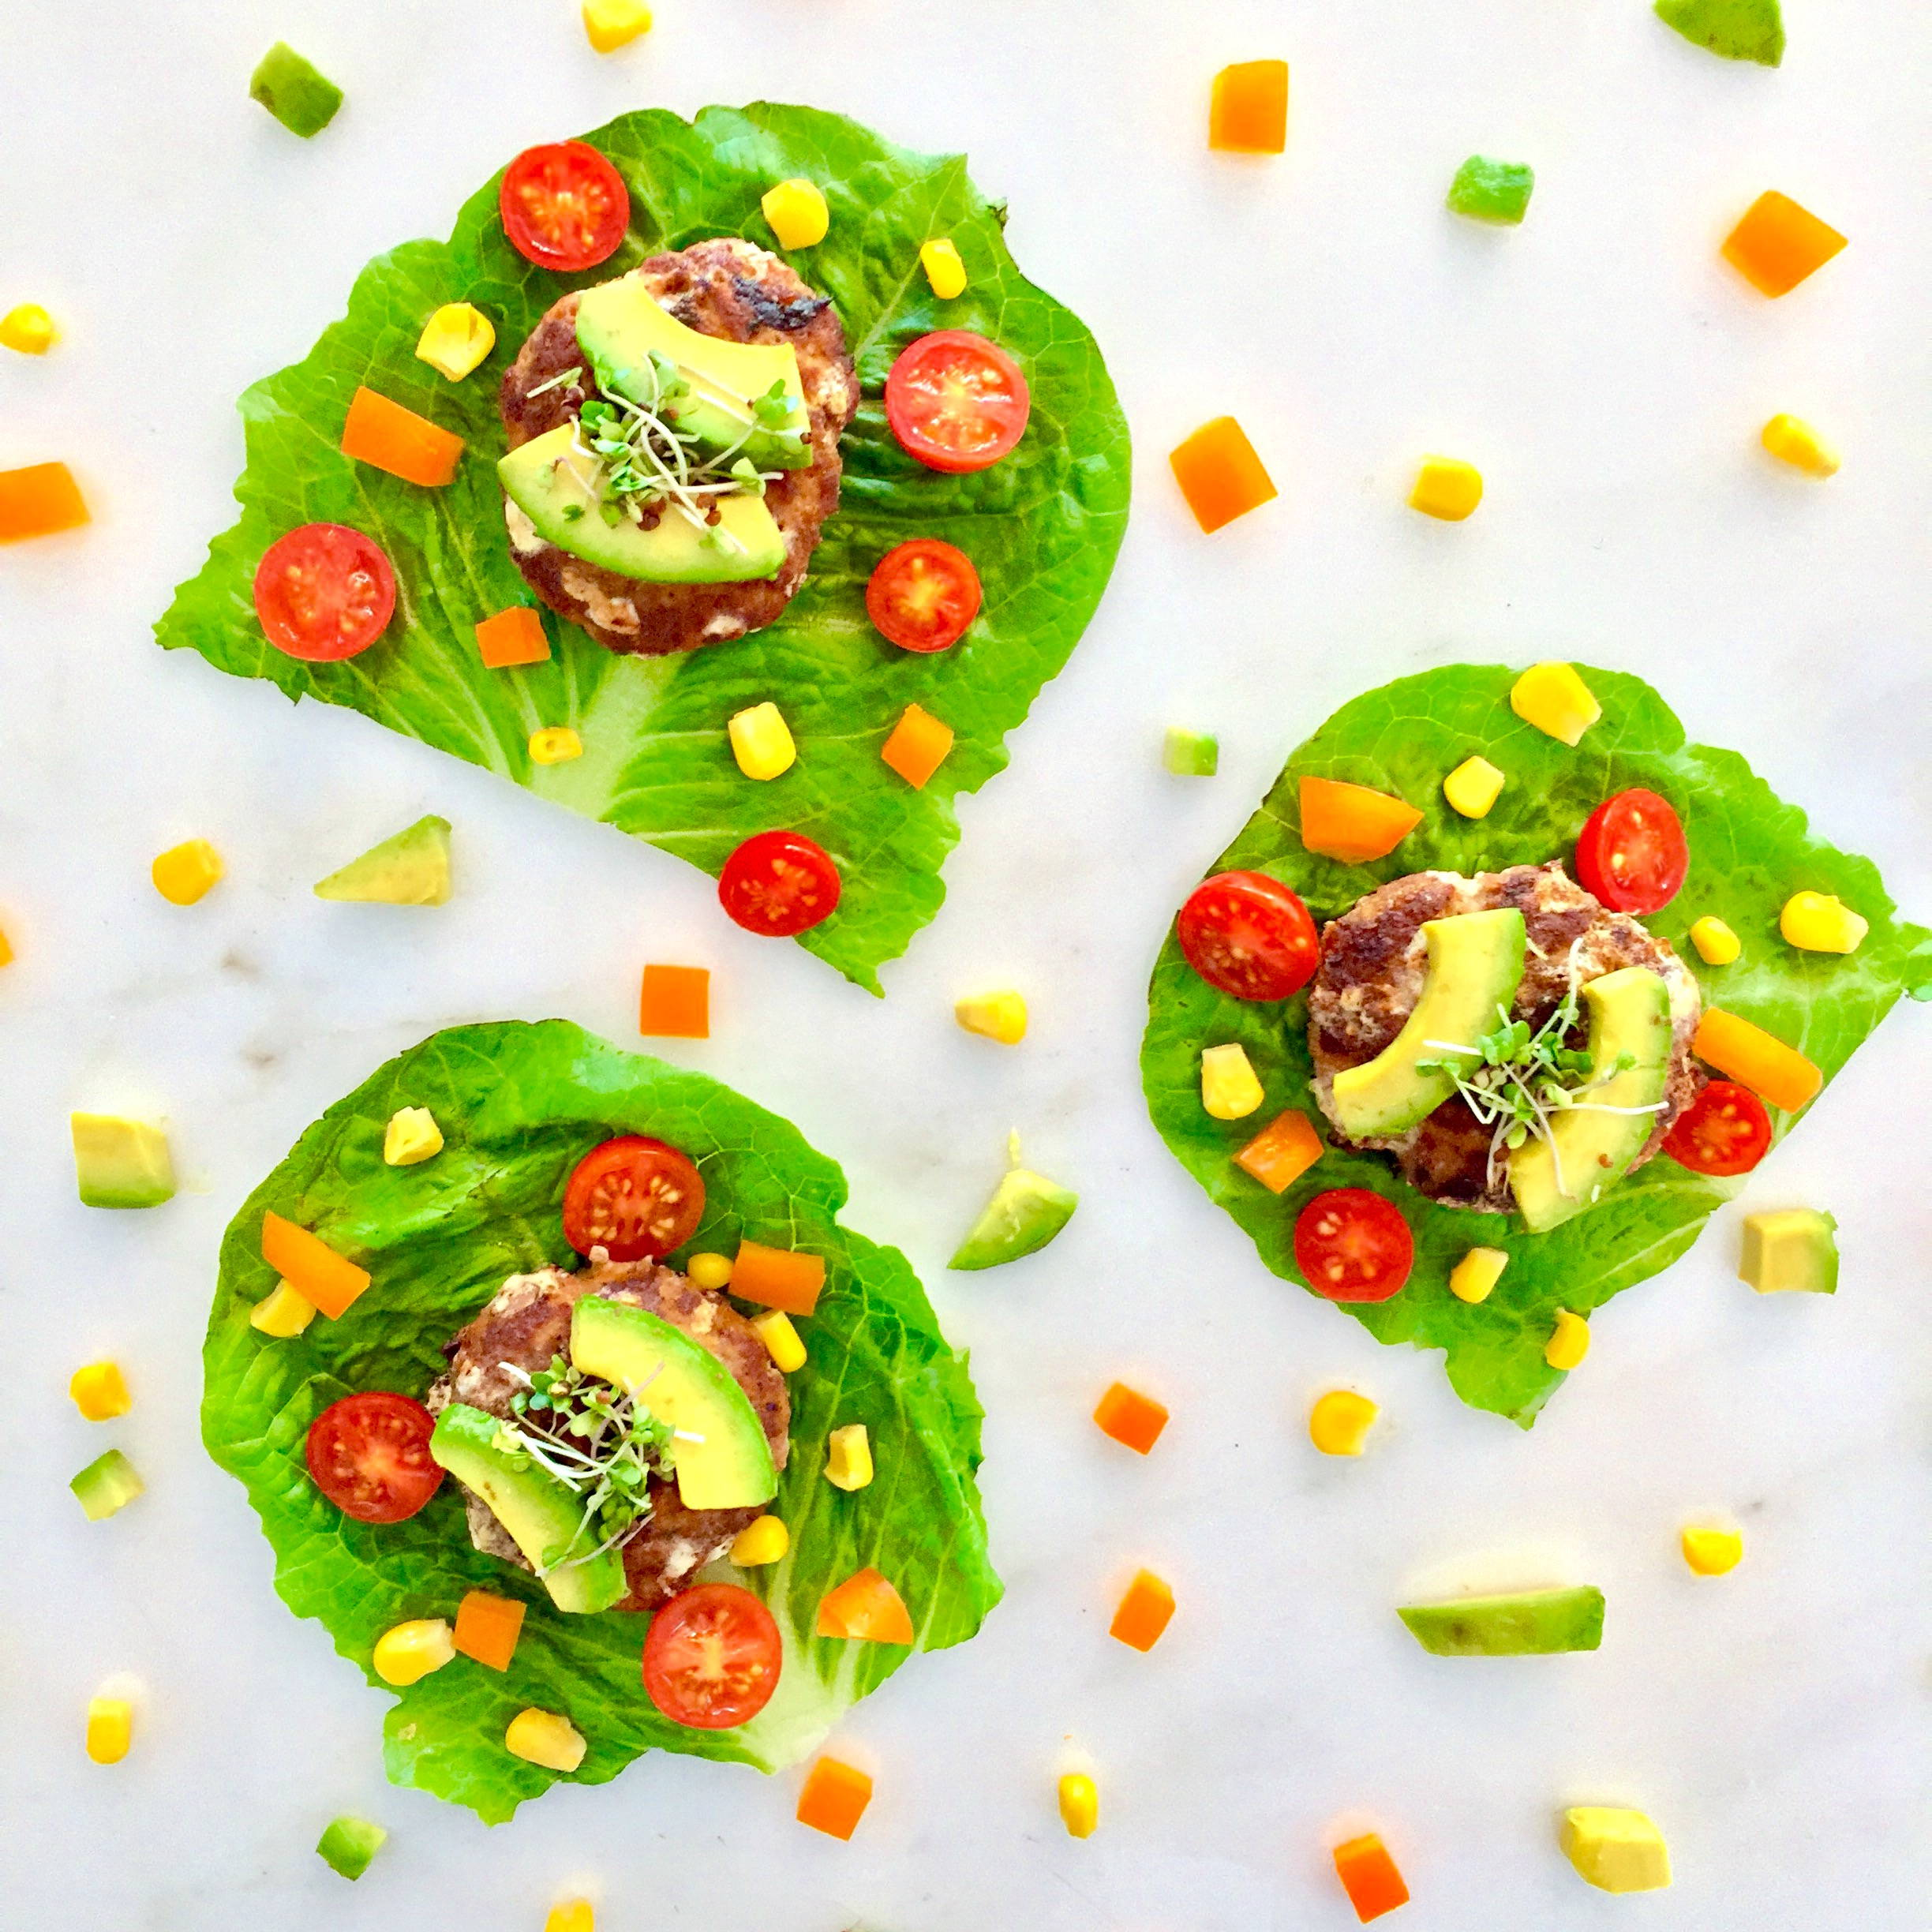 Lettuce cups with cut peppers, corn, tomatoes, turkey patties, avocado and broccoli microgreens.